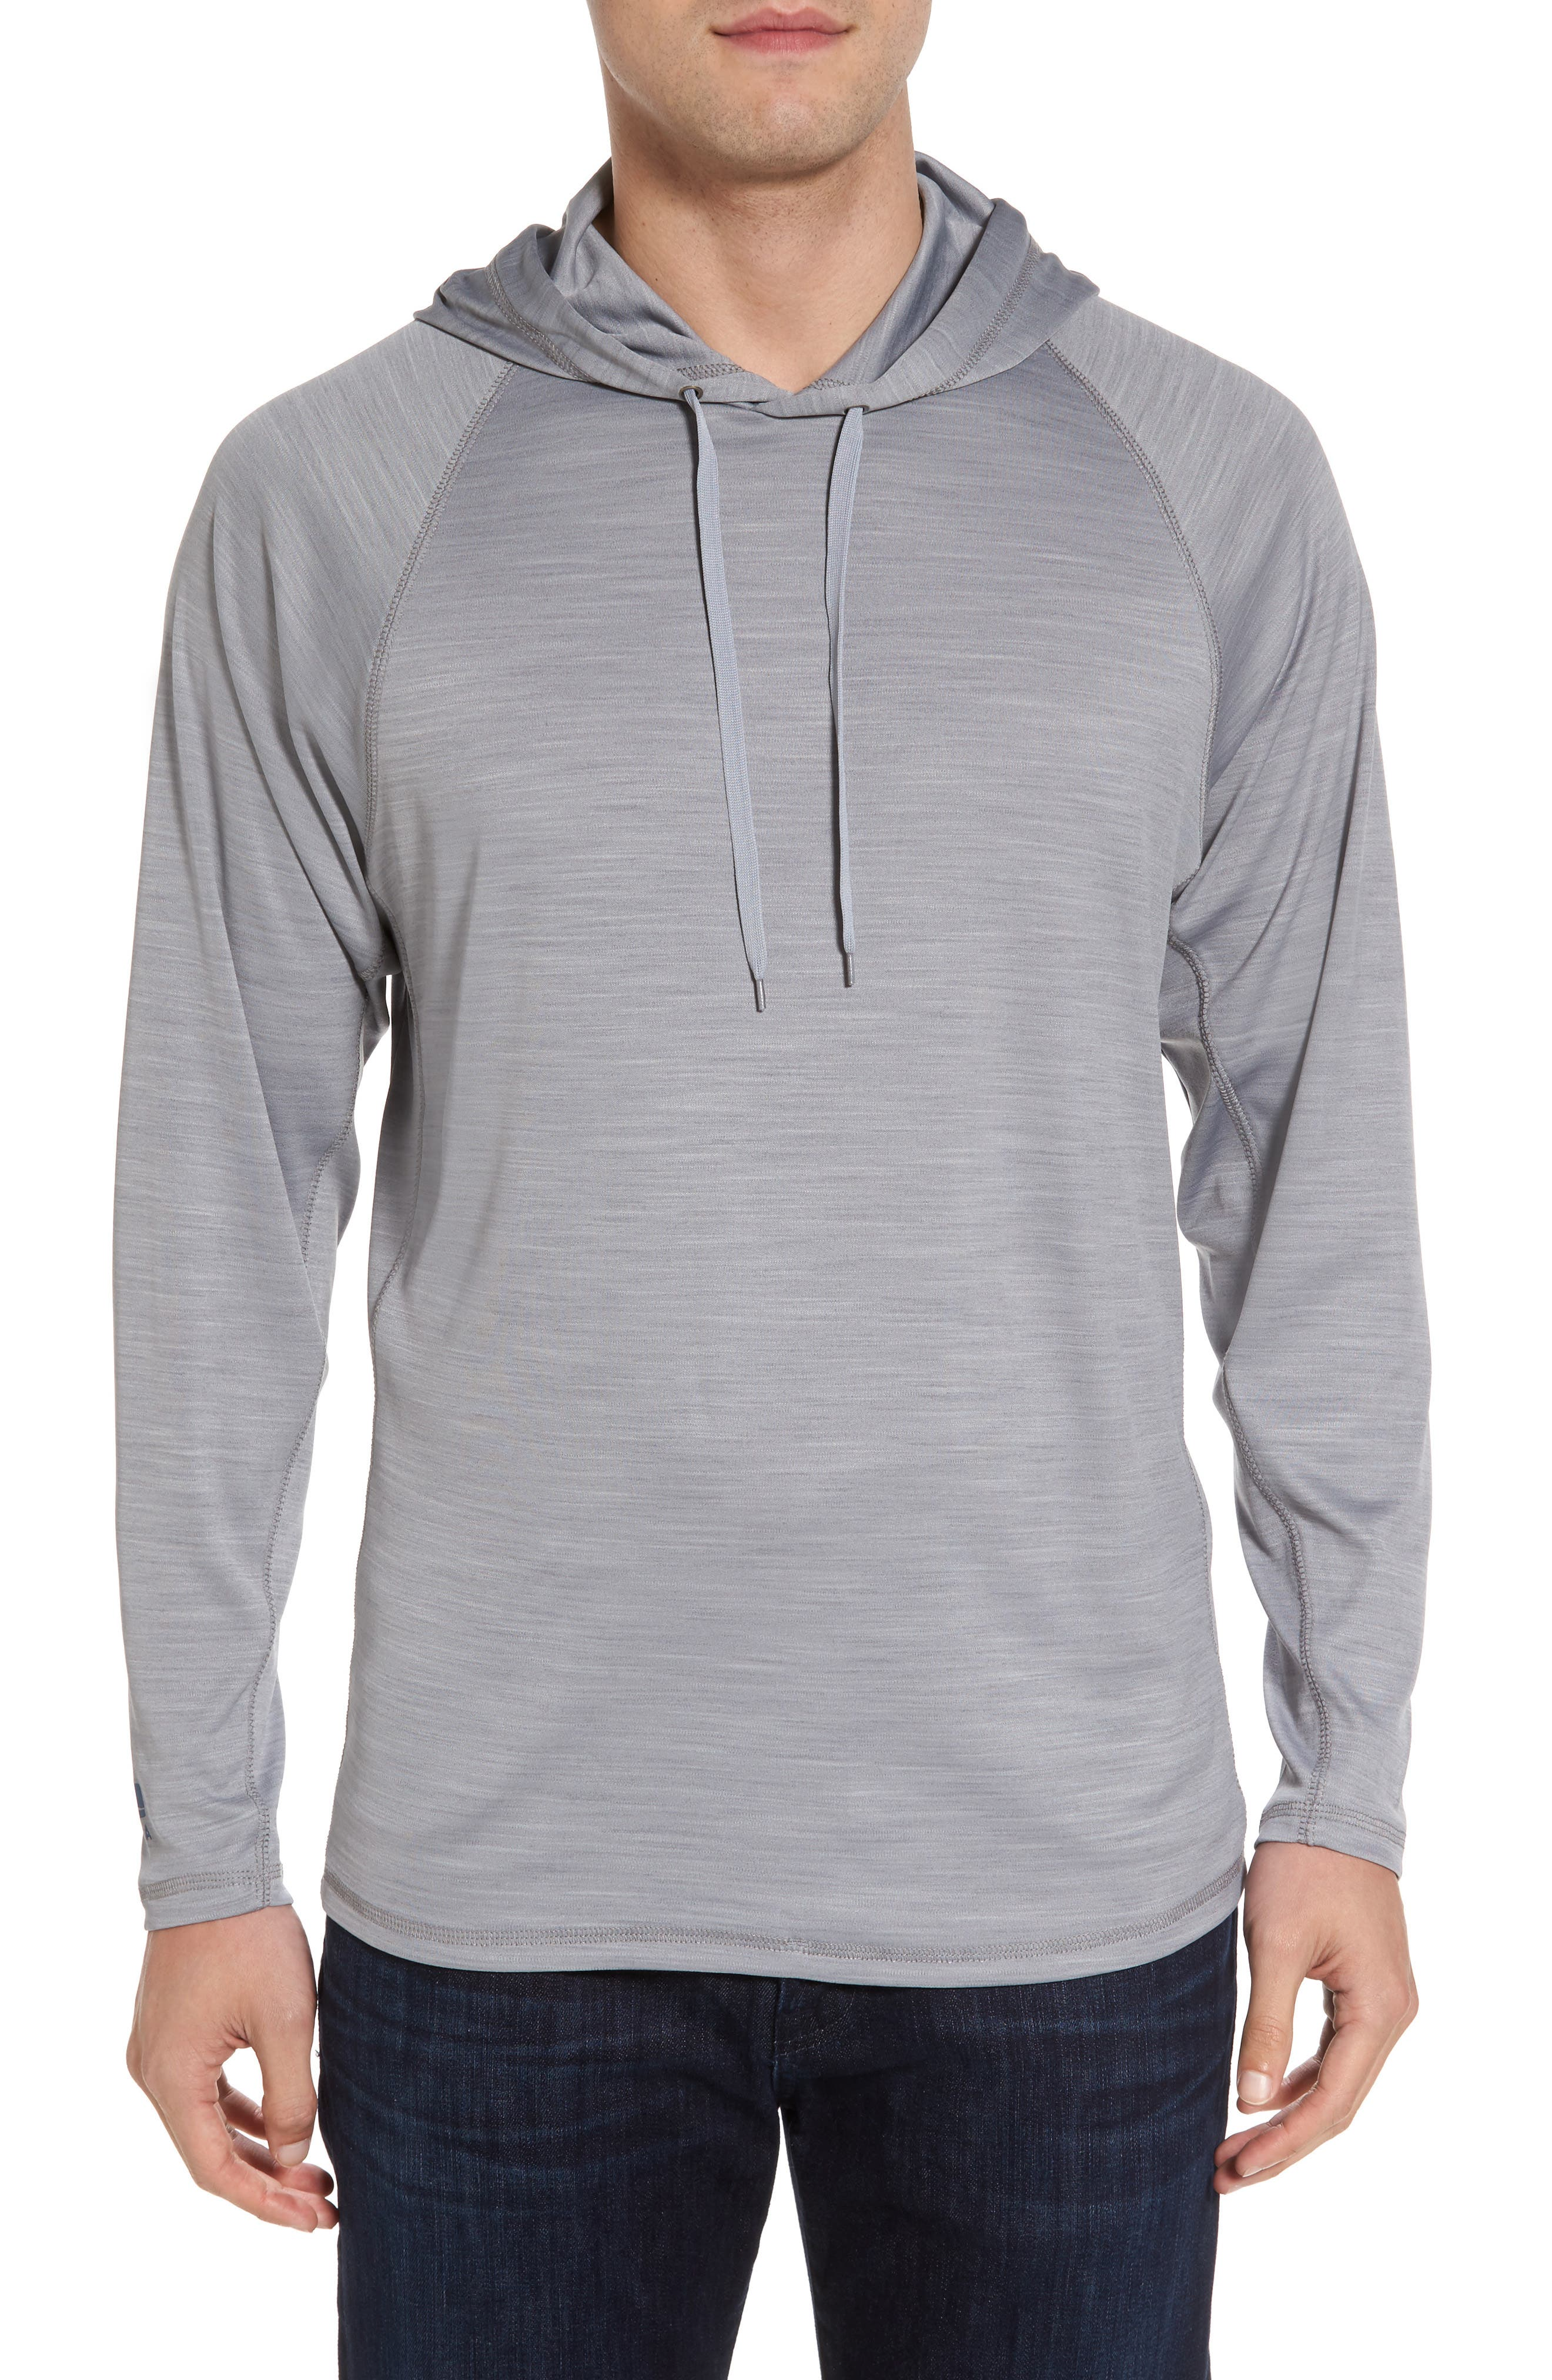 Undercover Hooded Long Sleeve Performance T-Shirt,                         Main,                         color, 020